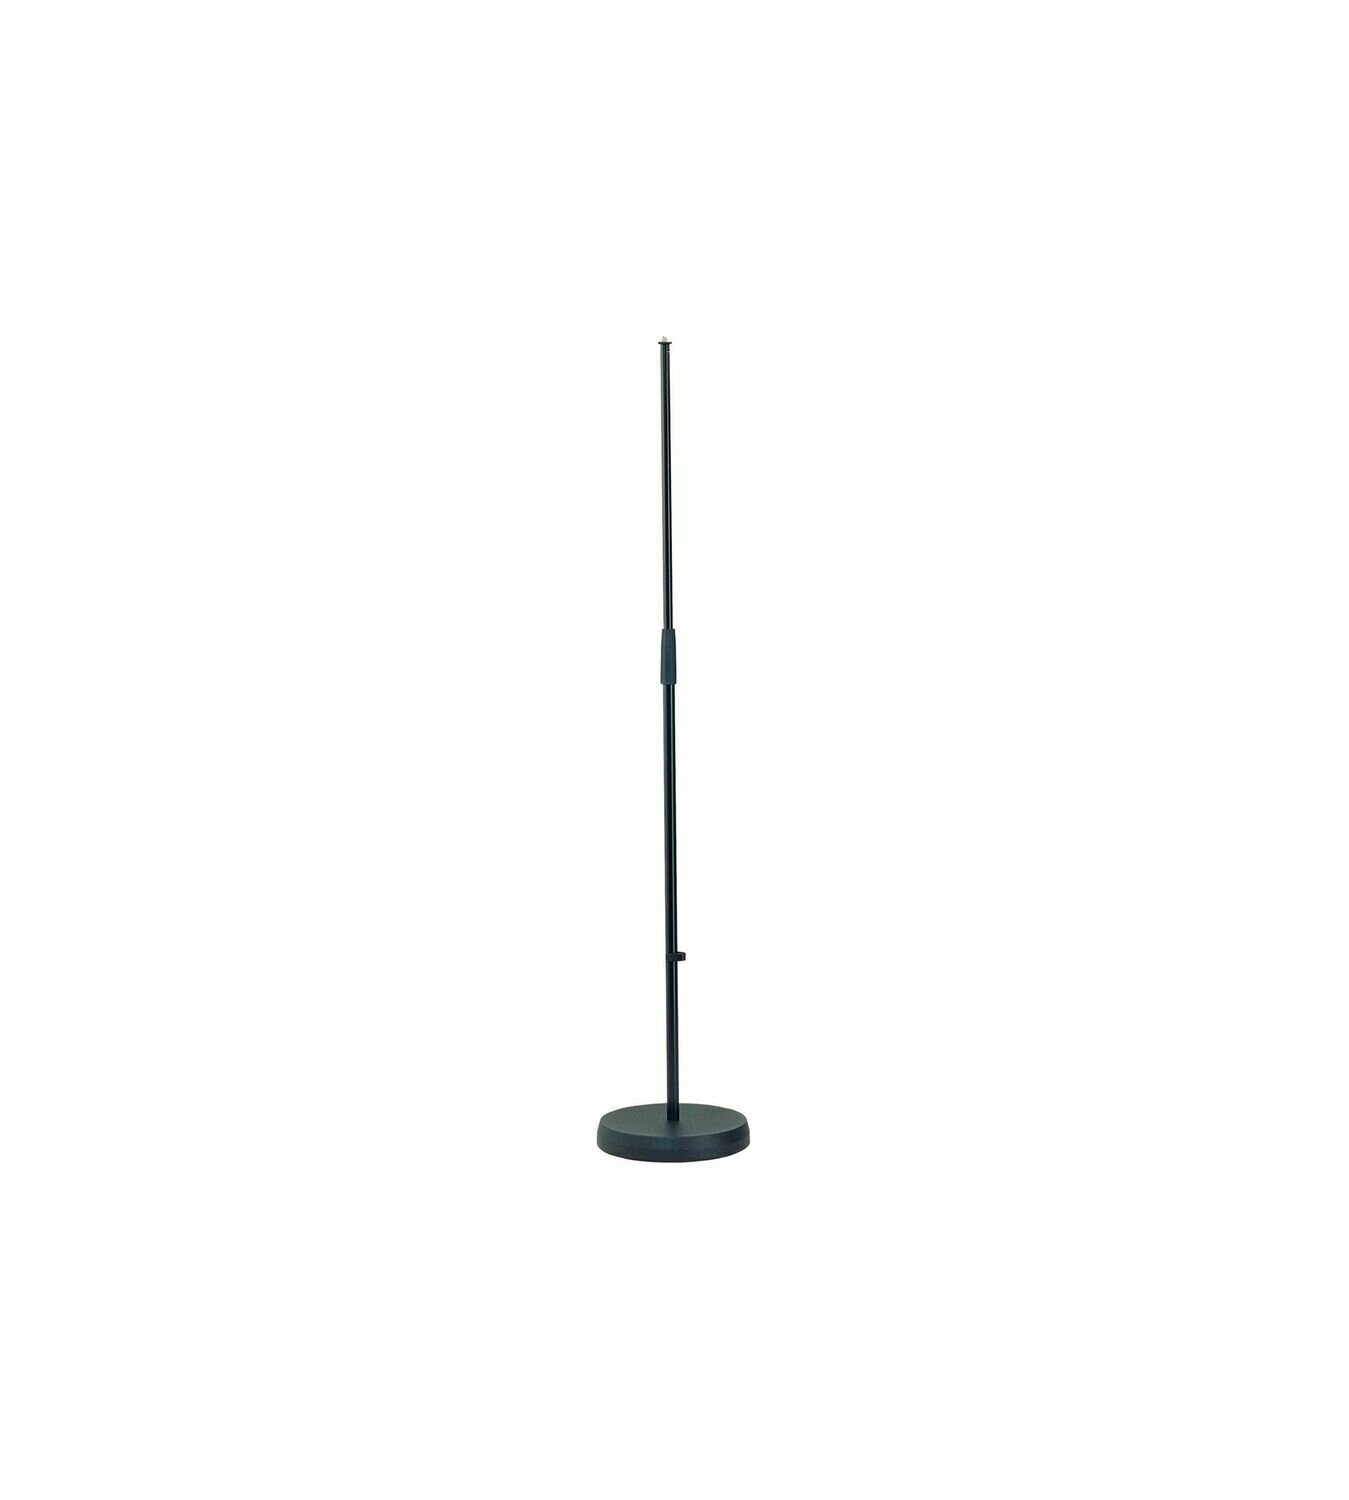 260 Microphone stand